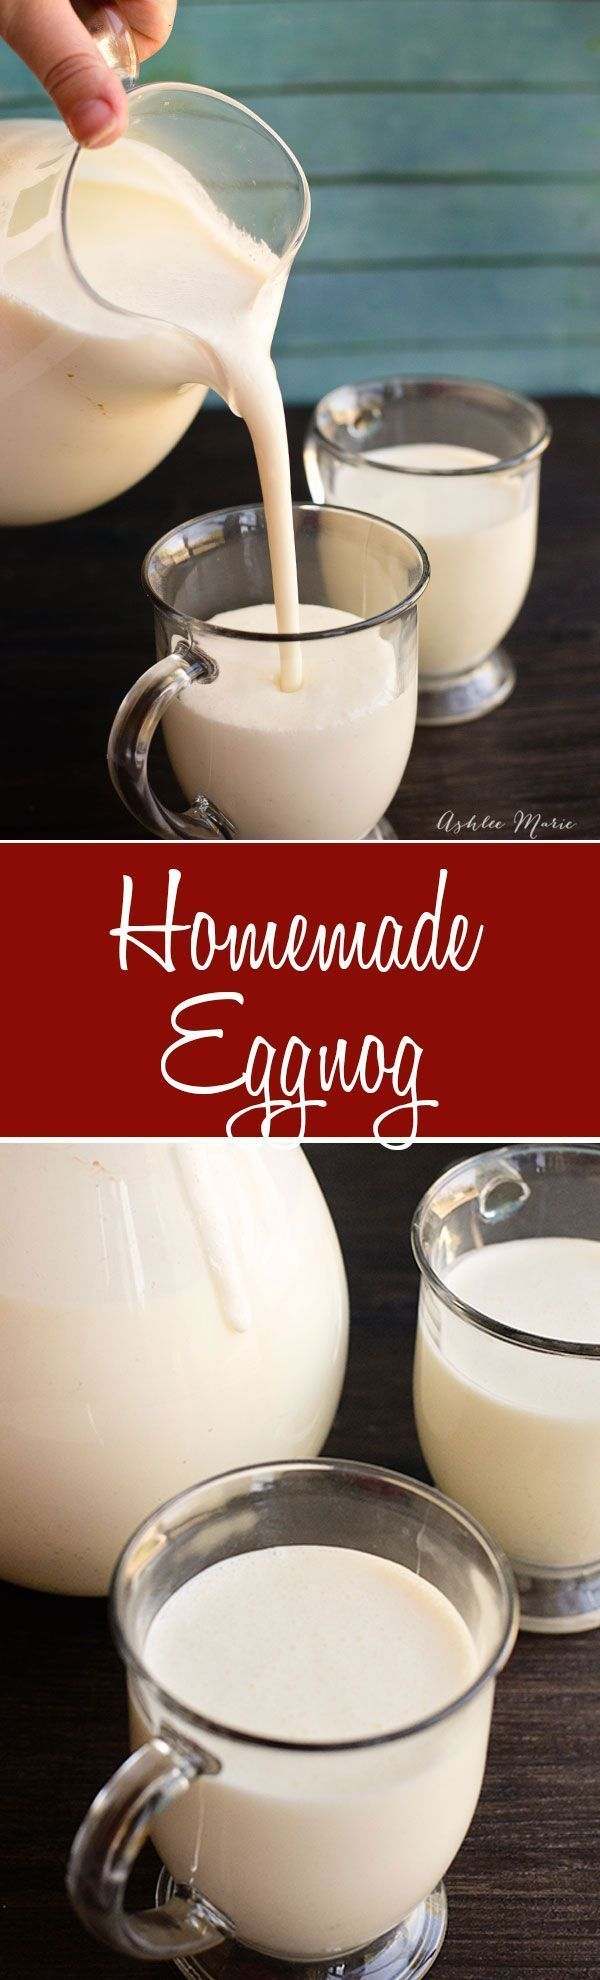 Homemade Eggnog recipe. Perfect for parties, Santa, Christmas Morning or just enjoying all season long this homemade eggnog is easy to make and tastes amazing